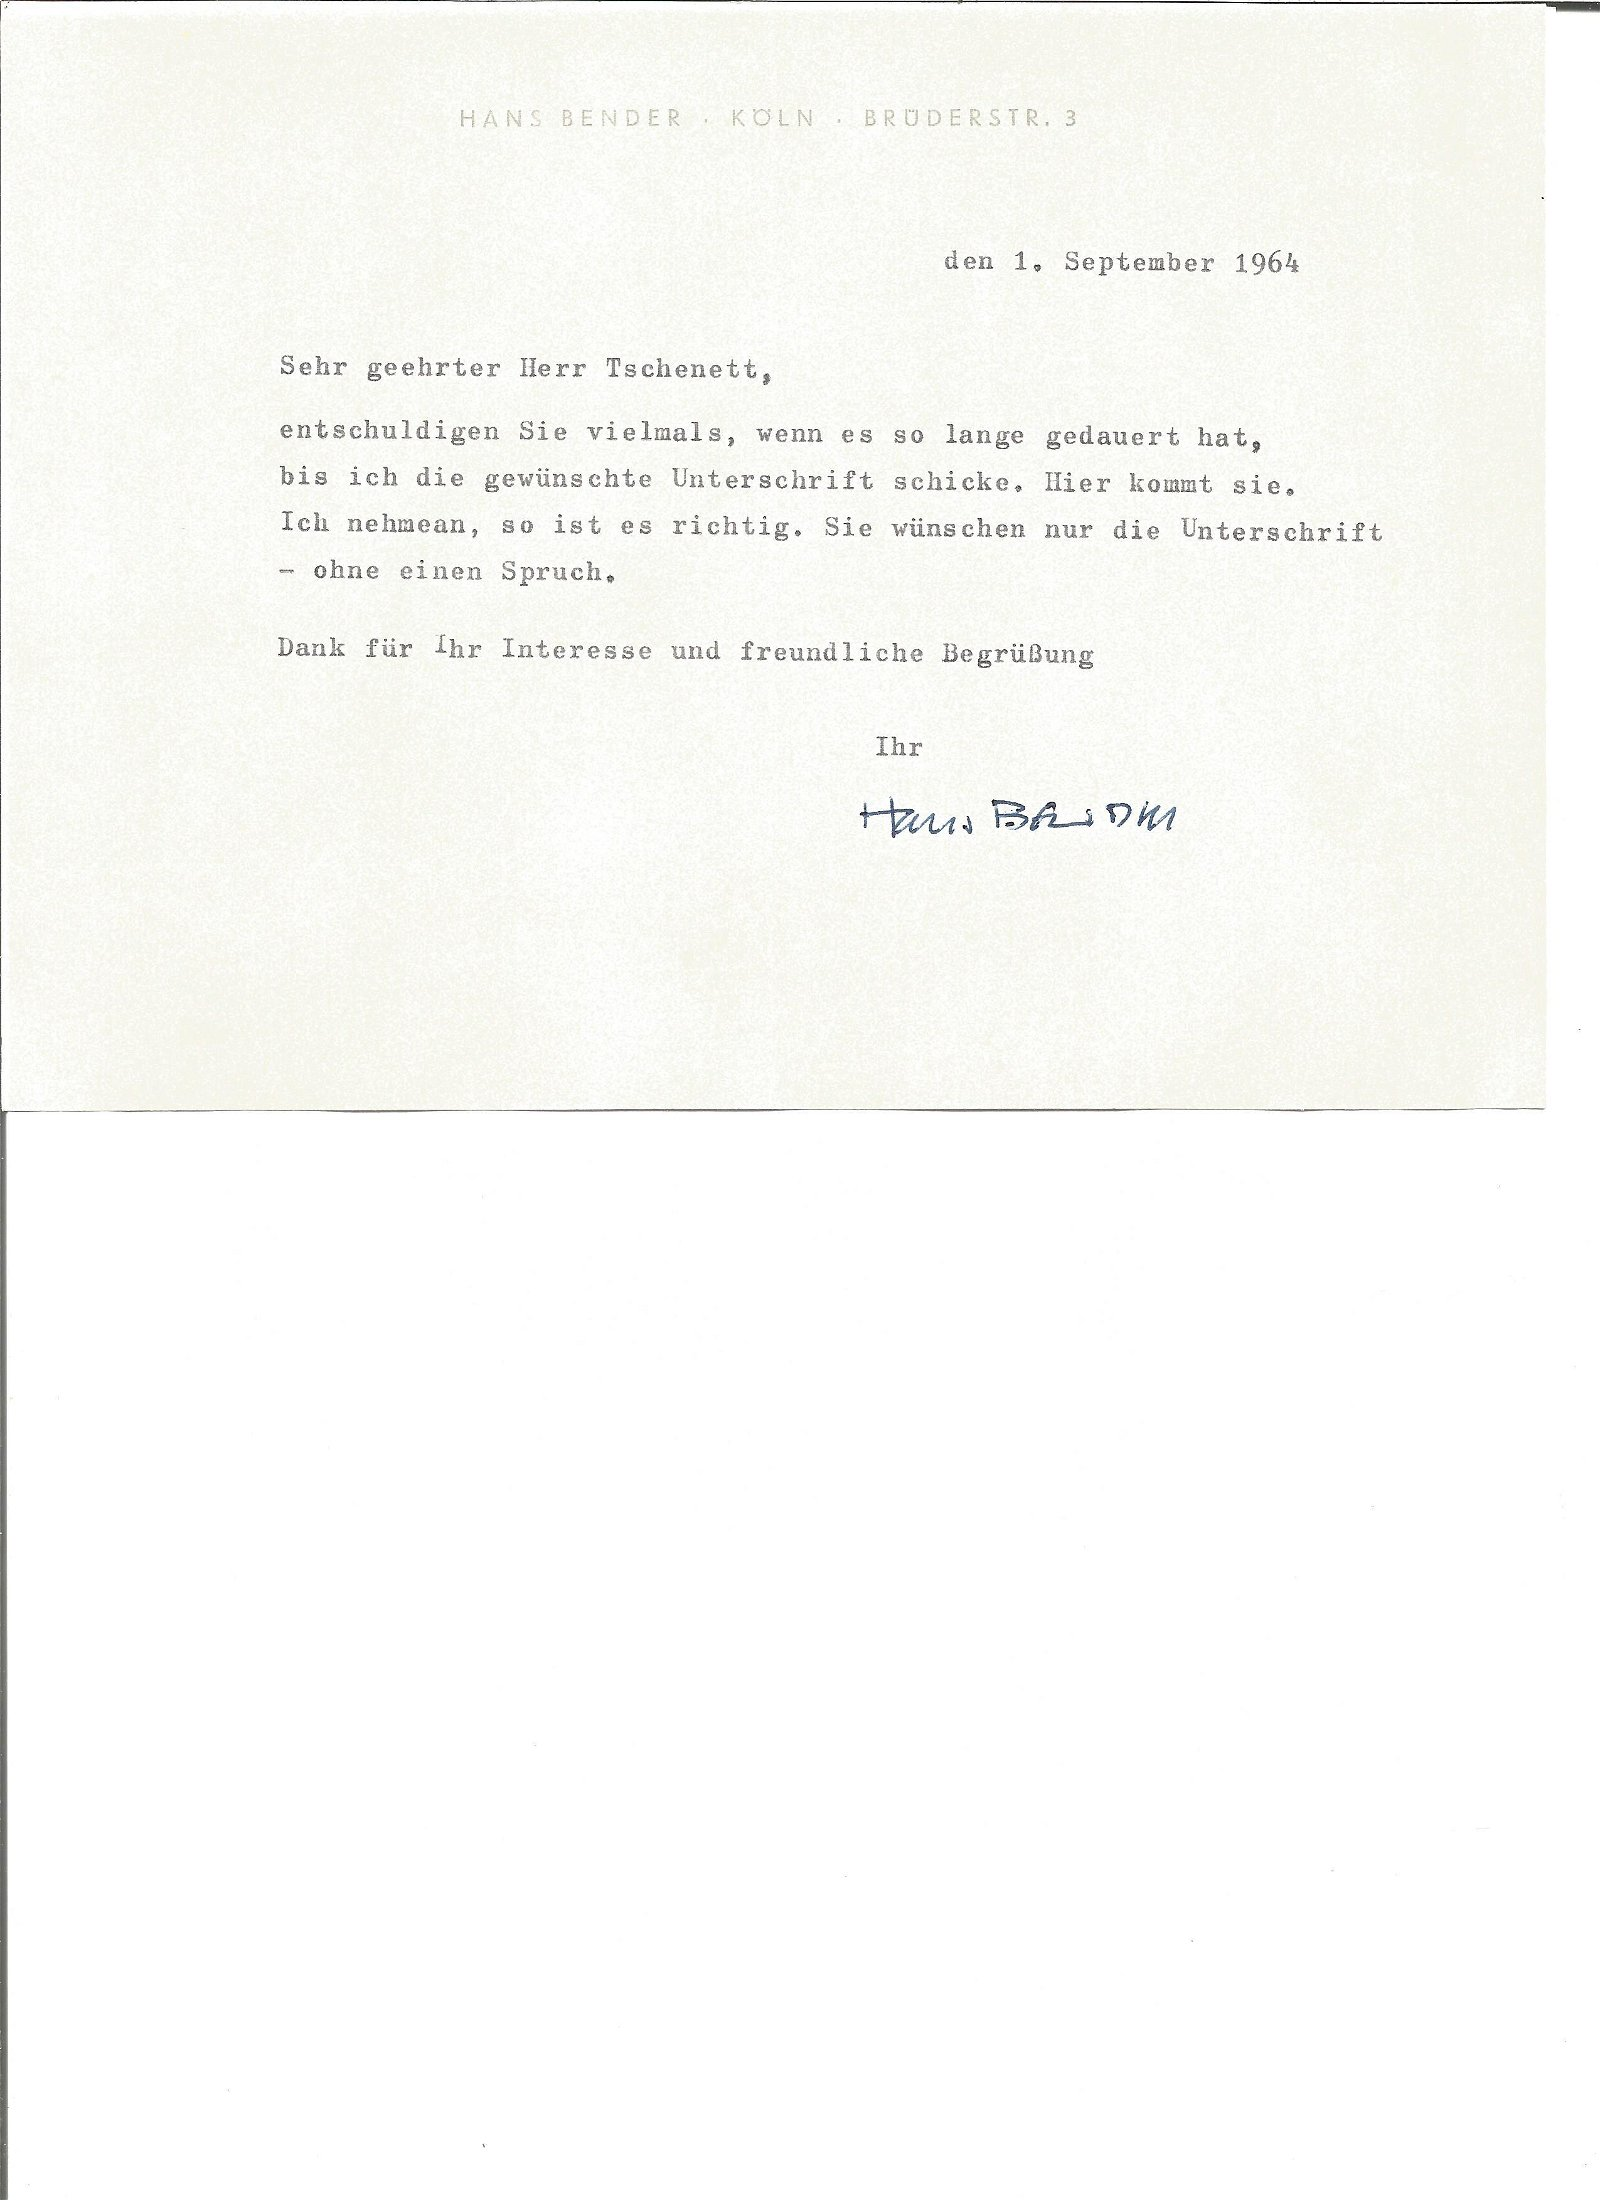 Hans Bender hand signed 1964 letter replying in German